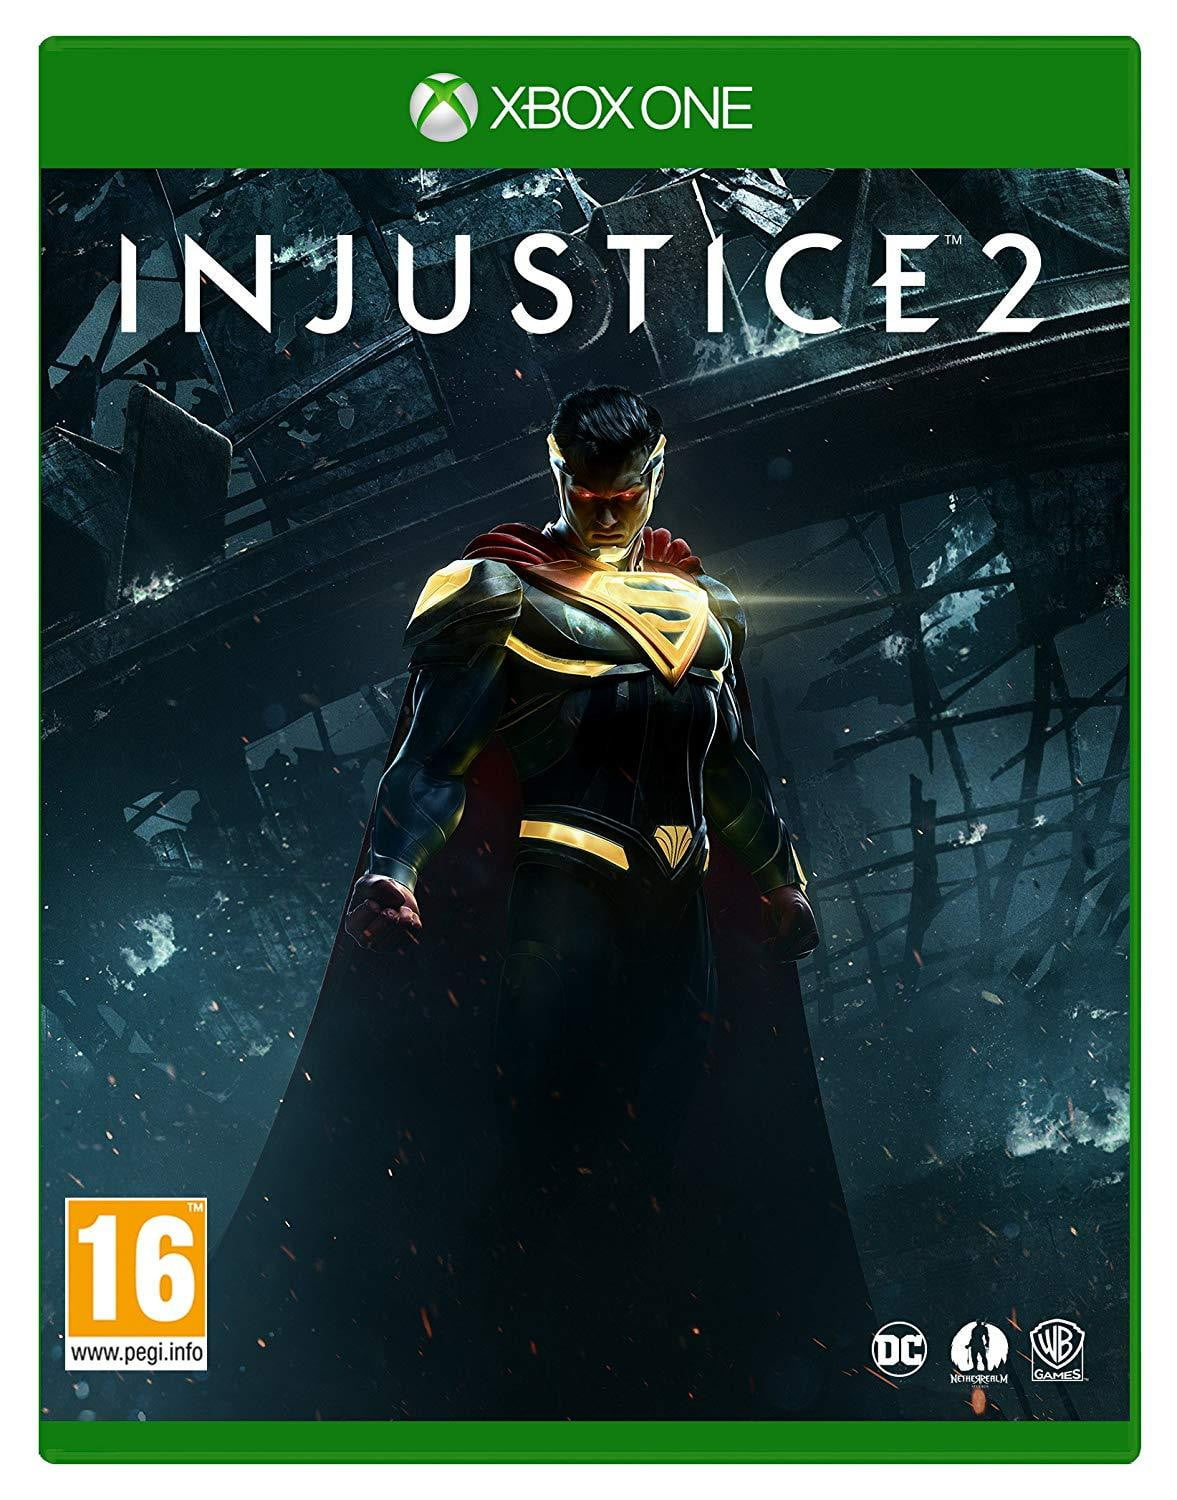 Buy Injustice 2 (XBOX ONE) XBOX ONE in Egypt - Shamy Stores